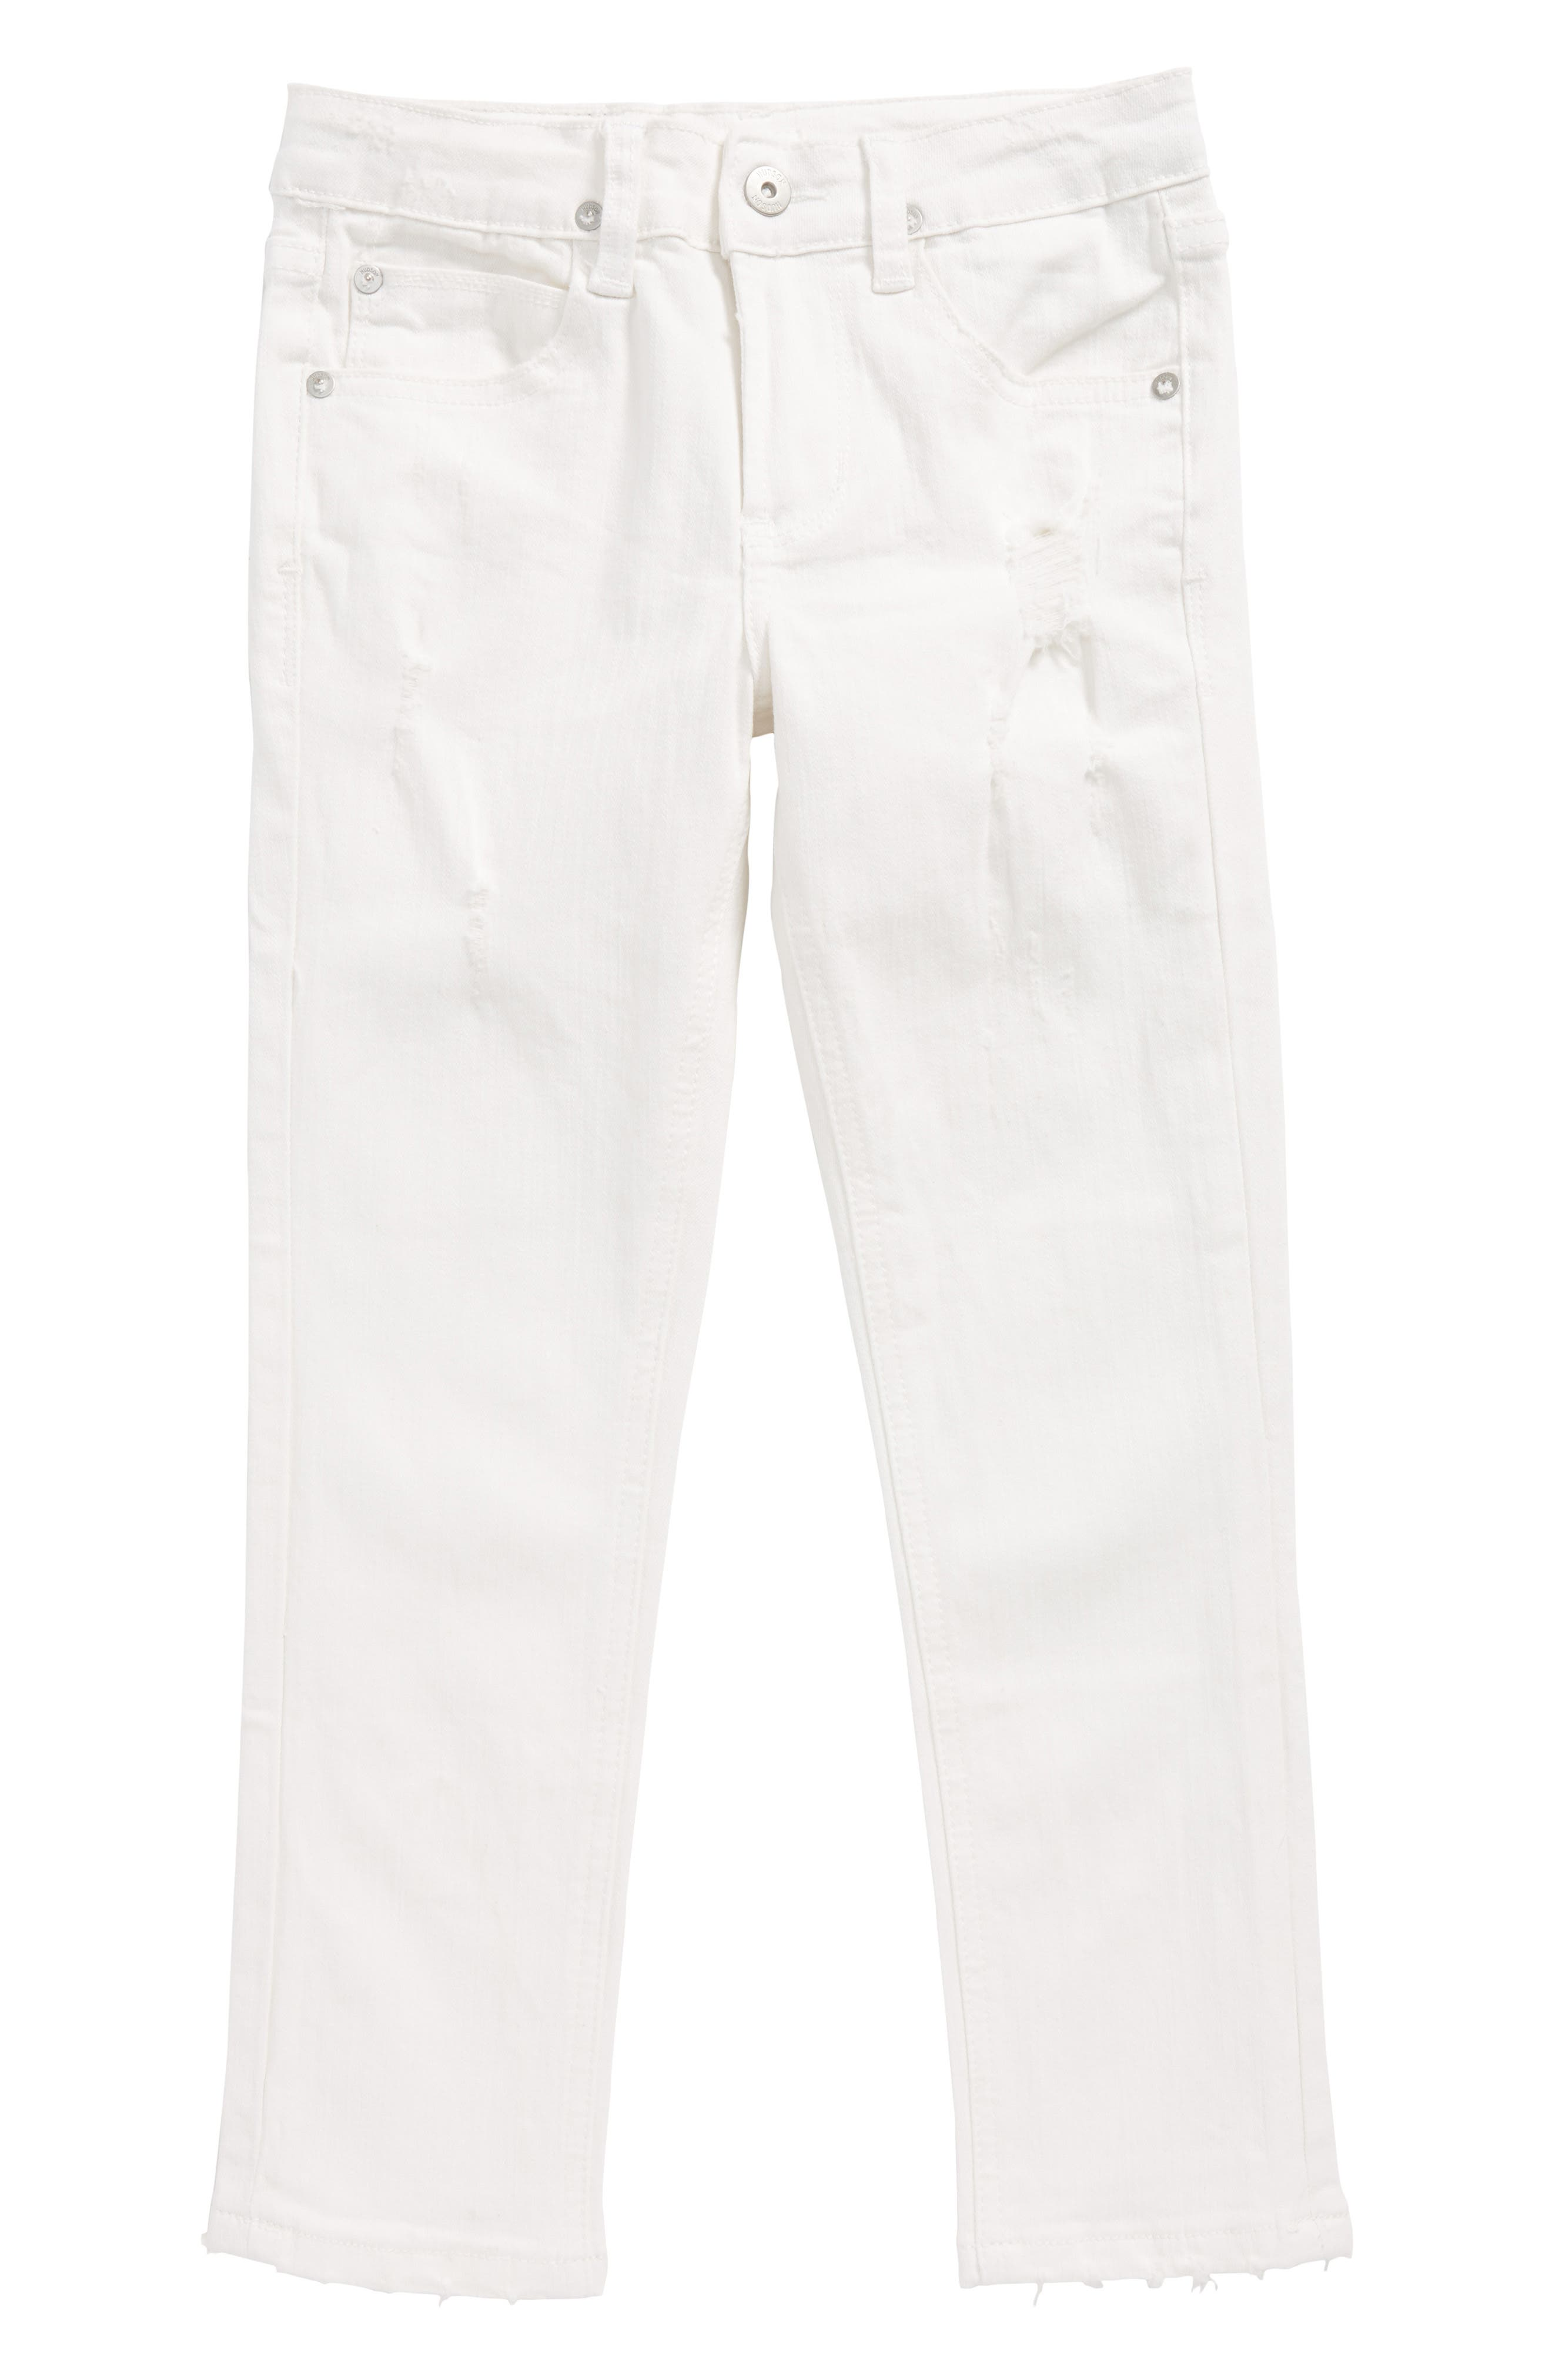 Jagger Slim Straight Leg Jeans,                         Main,                         color,